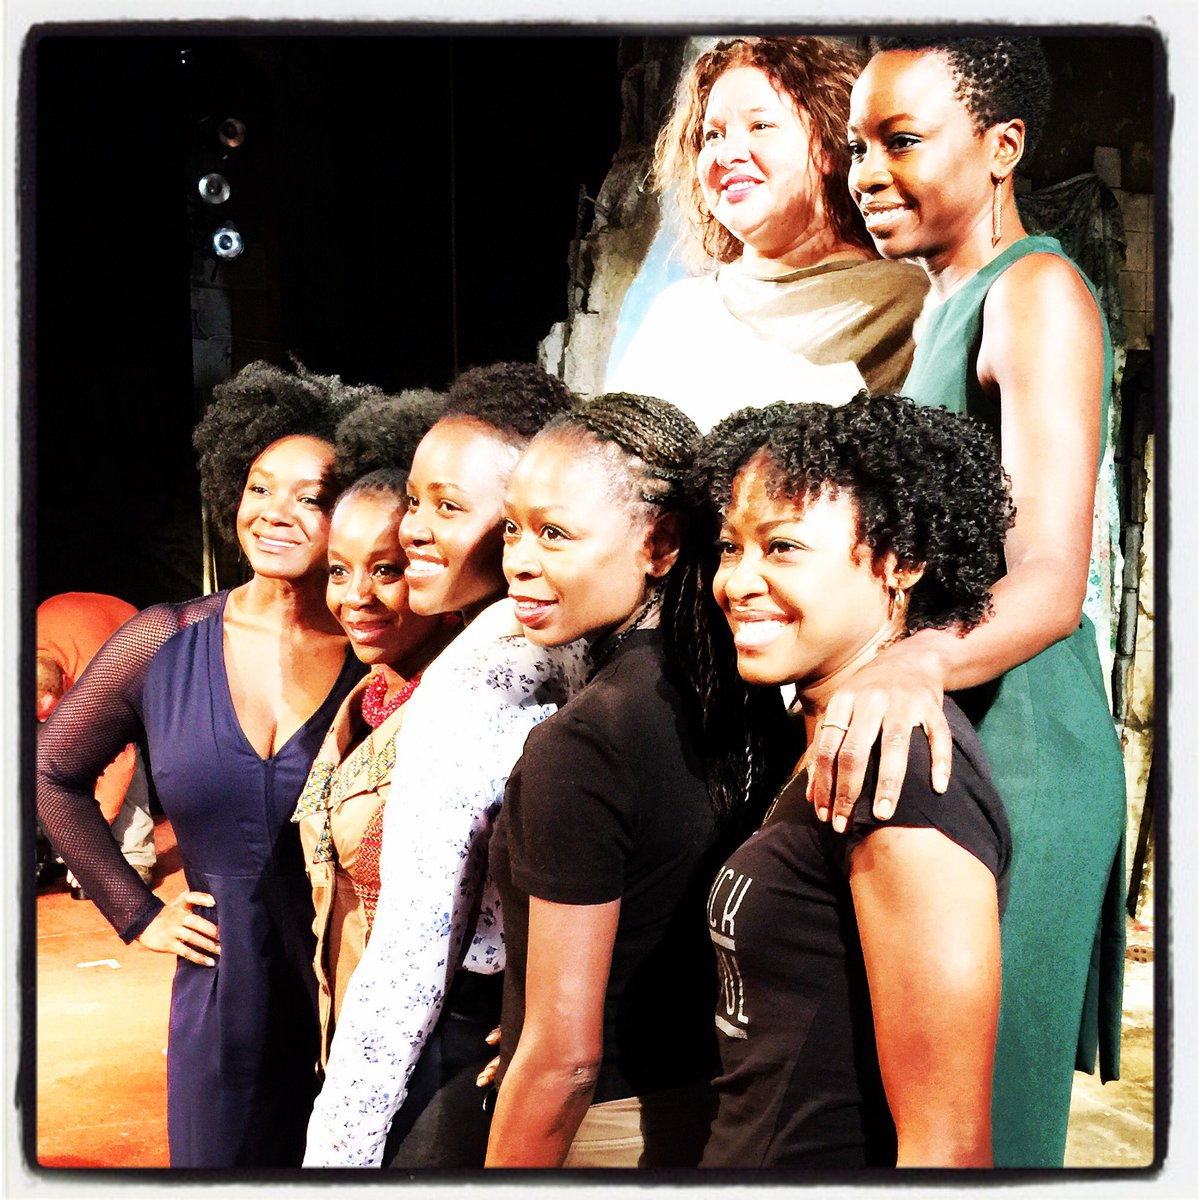 The amazing women of @eclipsedbway #MakingHistory and bring 10,000 girls to #Broadway https://t.co/7crIIy3UPk